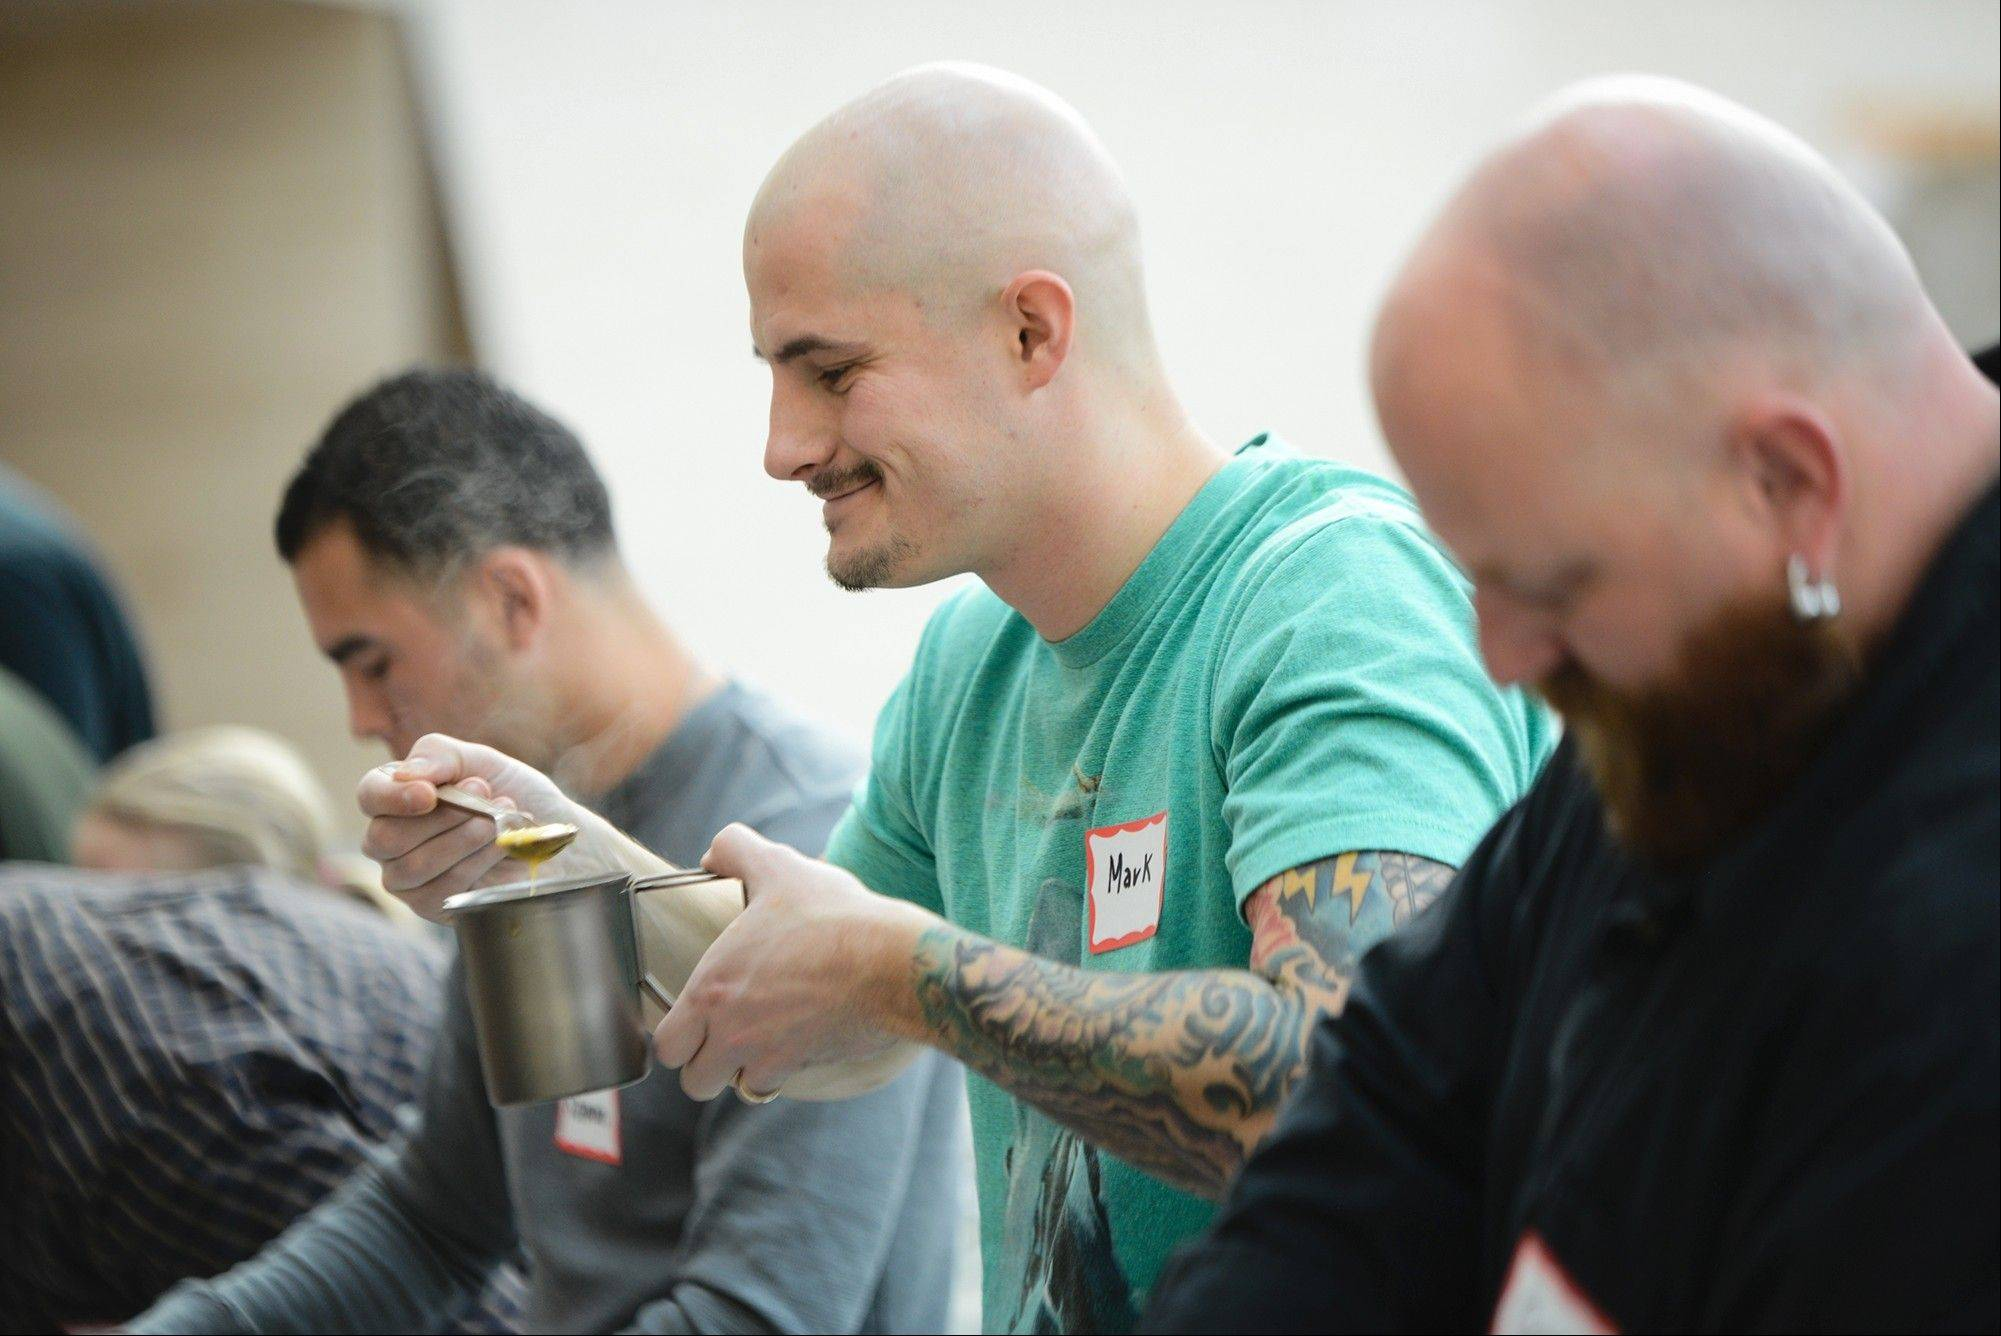 Mark Pike, 32, of Fredericksburg, Va., tastes his dish for the second annual Meal Ready-To-Eat/MRE cook-off Saturday at the National Museum of the Marine Corps in Triangle, Va.